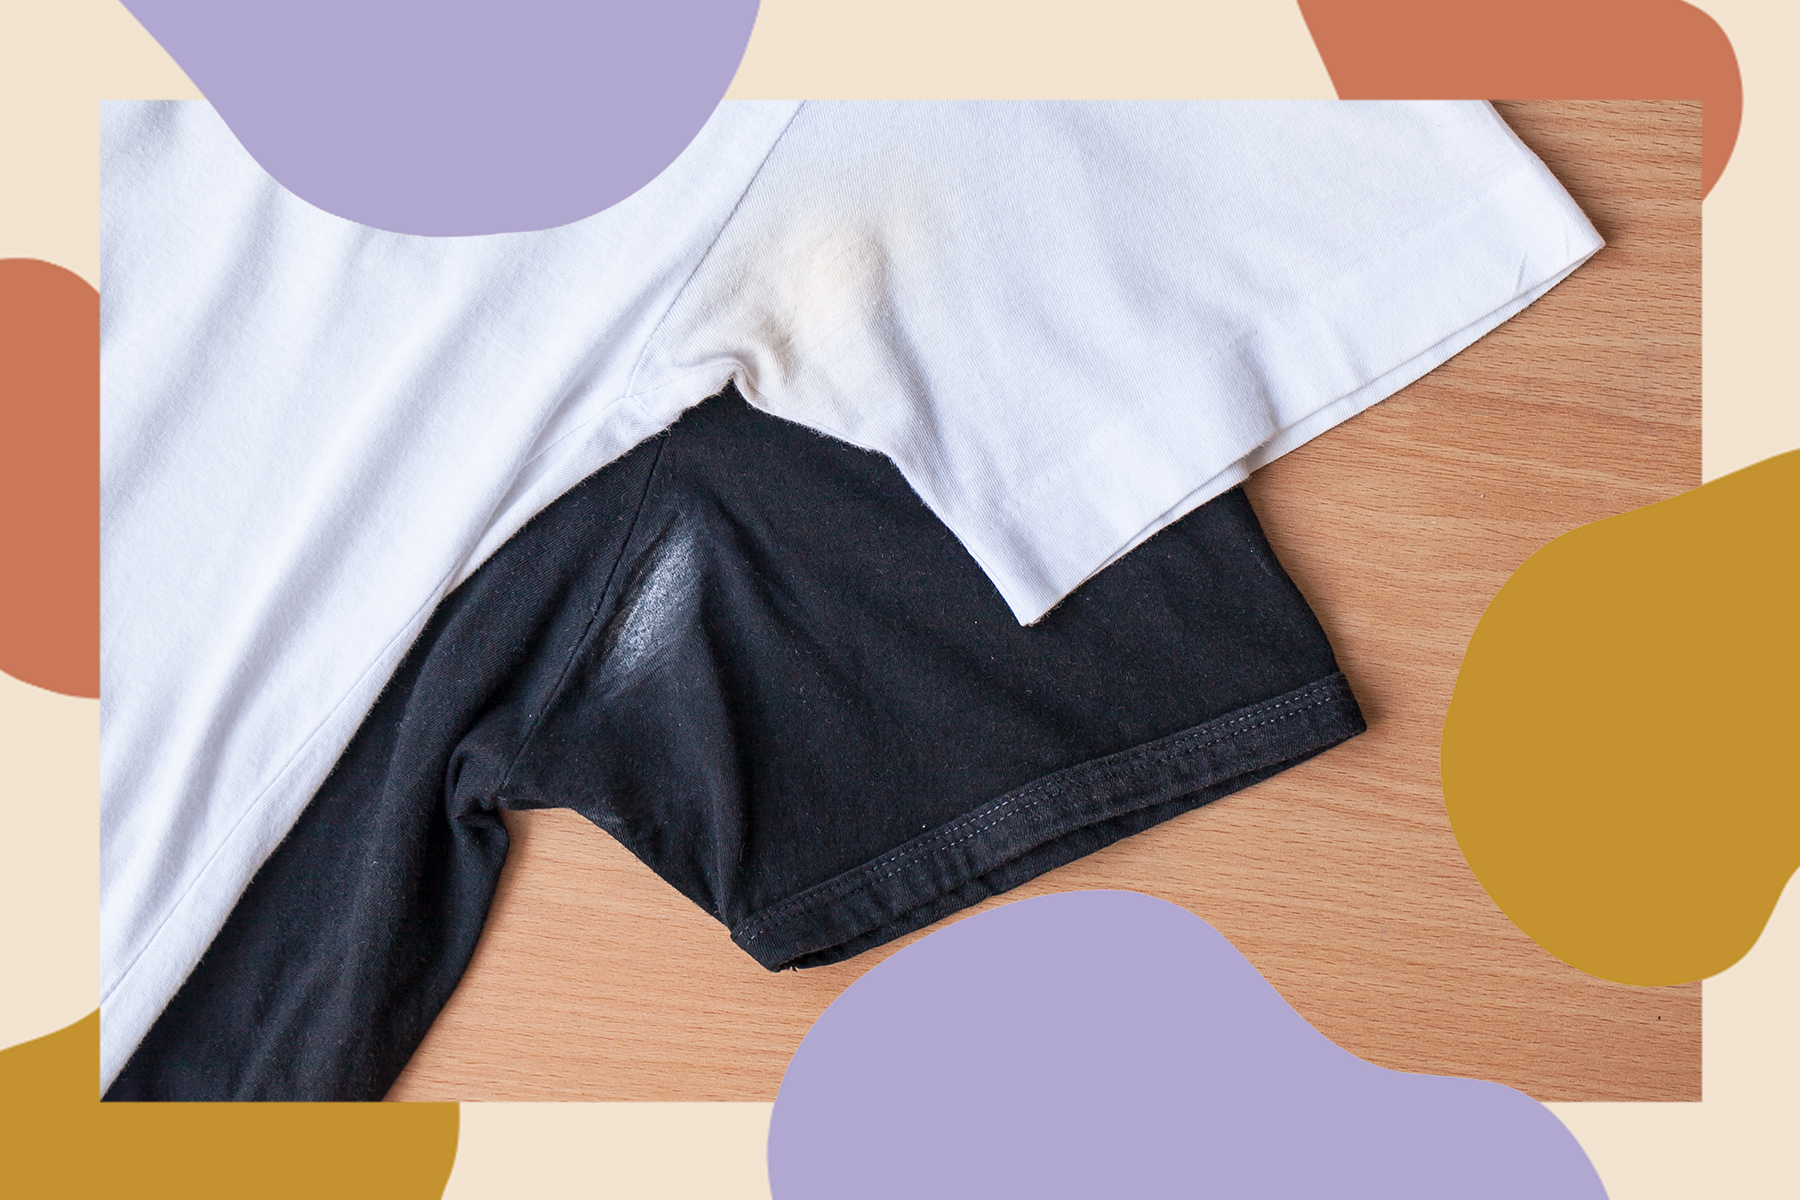 how to get deodorant stains out of shirts